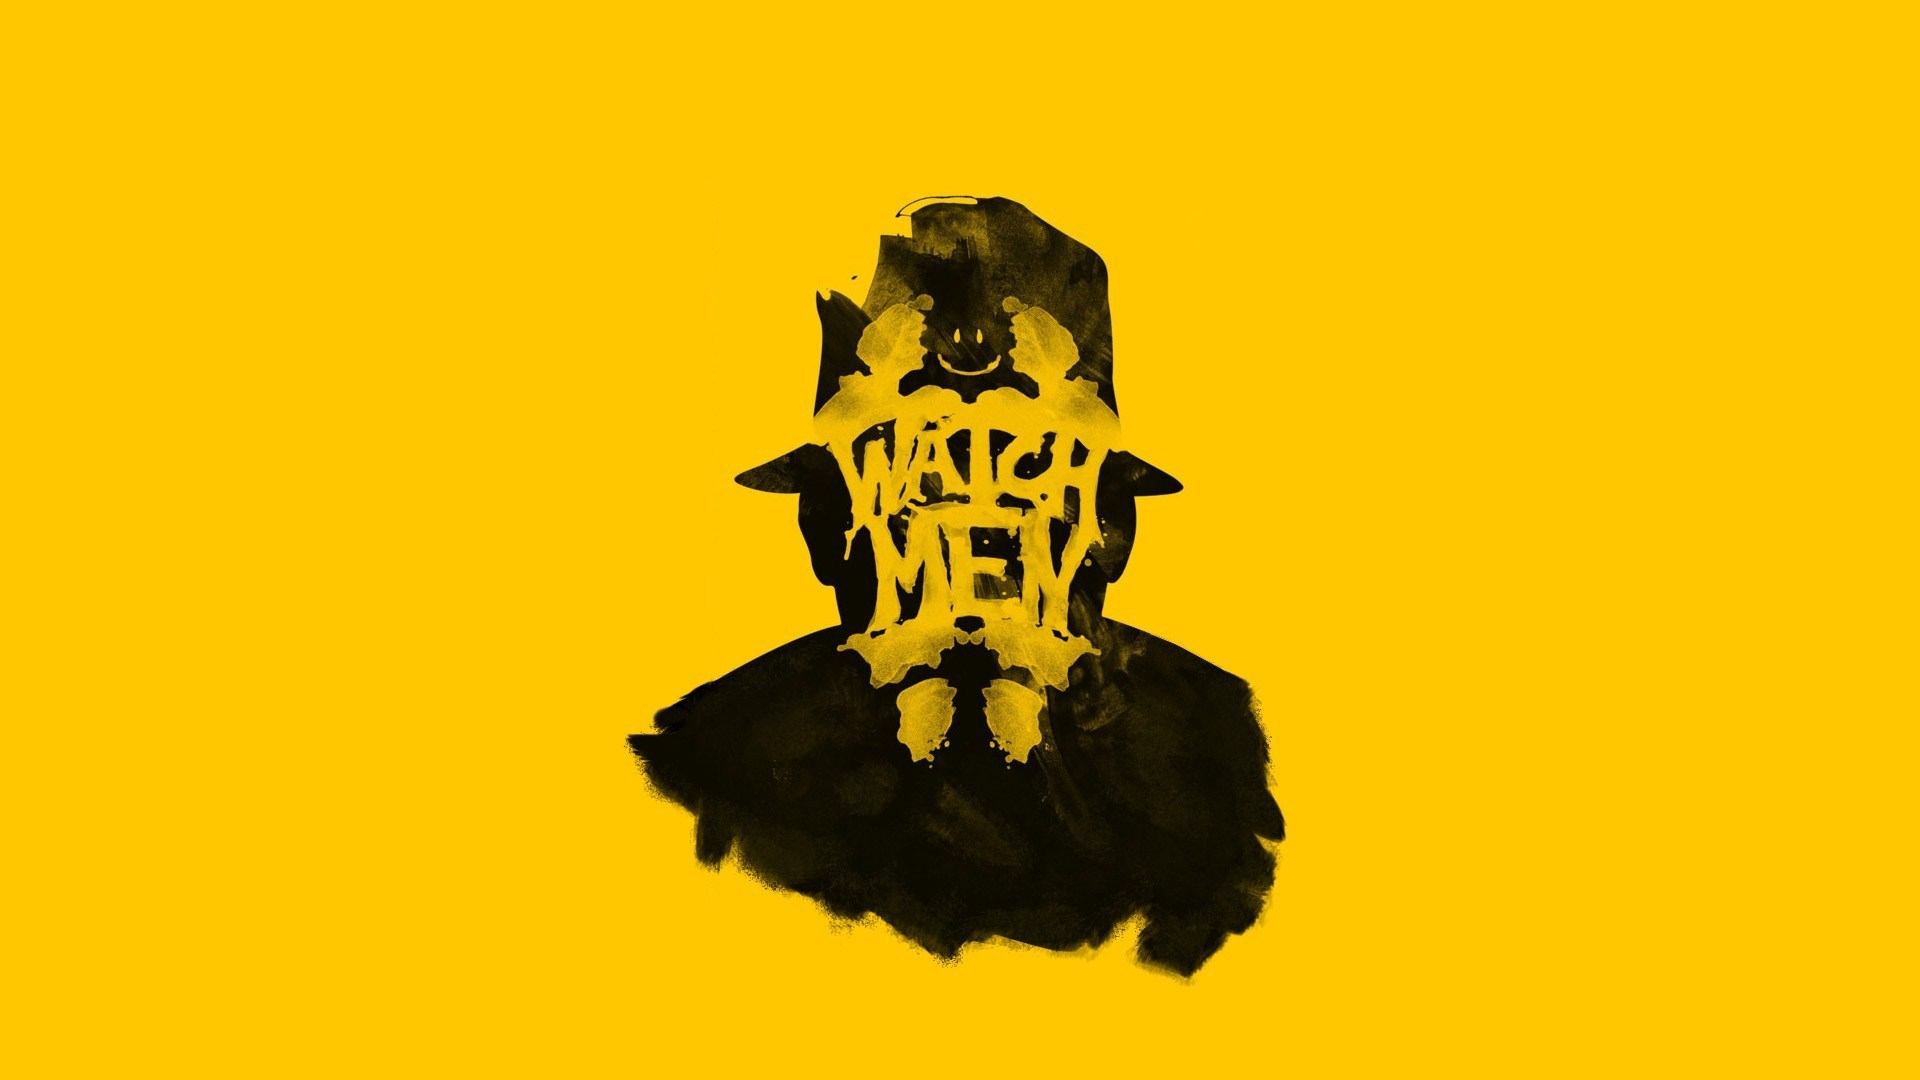 Watchmen Artwork